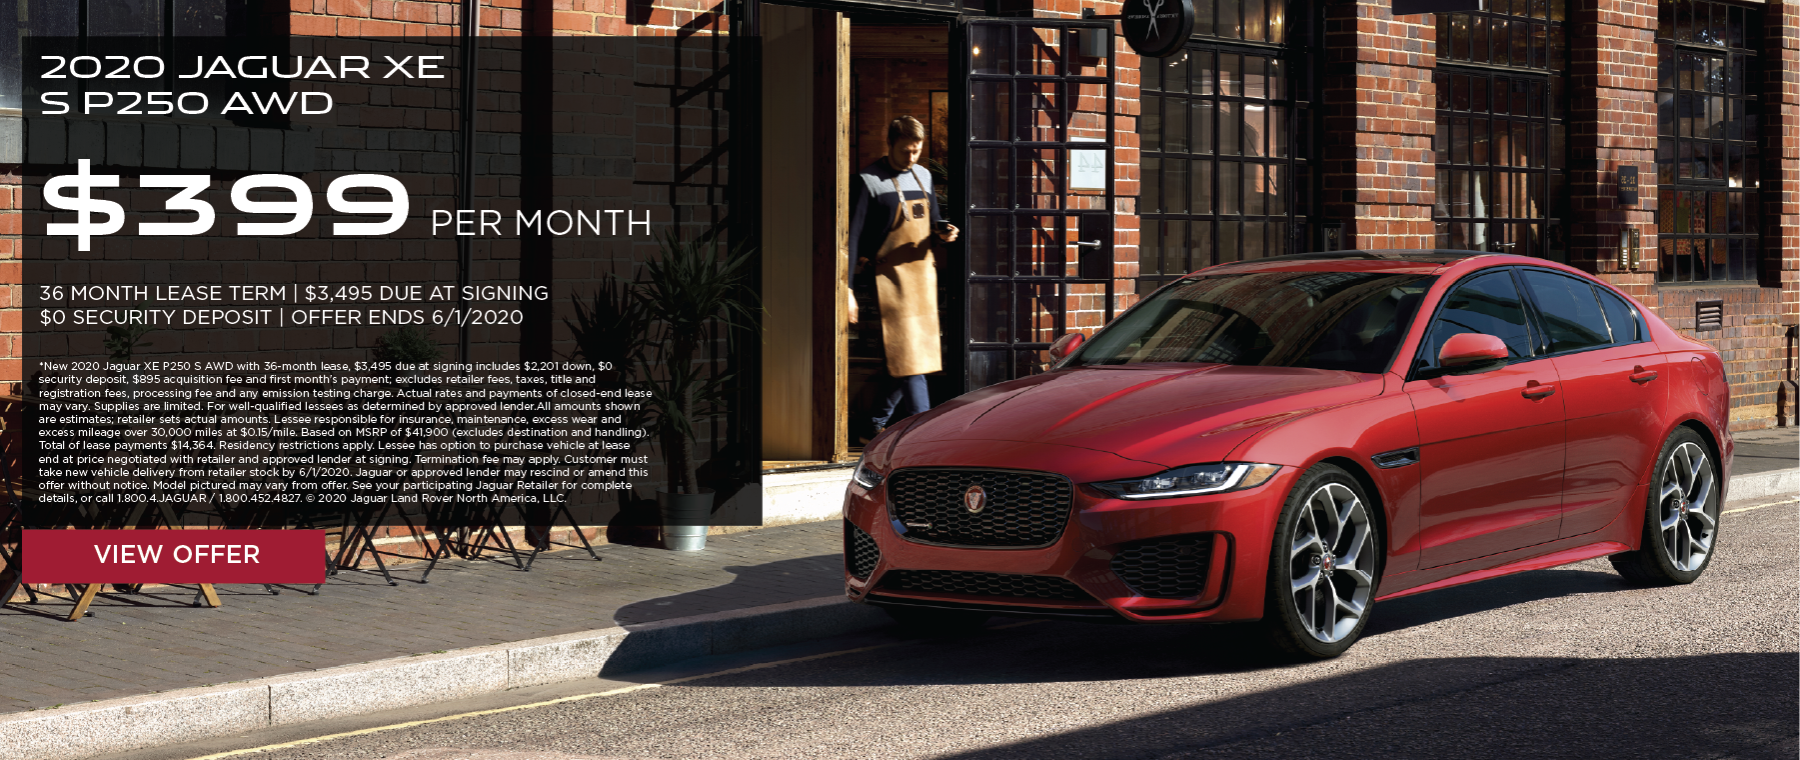 2020 JAGUAR XE P250 S AWD. $399 PER MONTH. 36 MONTH LEASE TERM. $3,495 CASH DUE AT SIGNING. $0 SECURITY DEPOSIT. 10,000 MILES PER YEAR. EXCLUDES RETAILER FEES, TAXES, TITLE AND REGISTRATION FEES, PROCESSING FEE AND ANY EMISSION TESTING CHARGE. OFFER ENDS 6/1/2020.